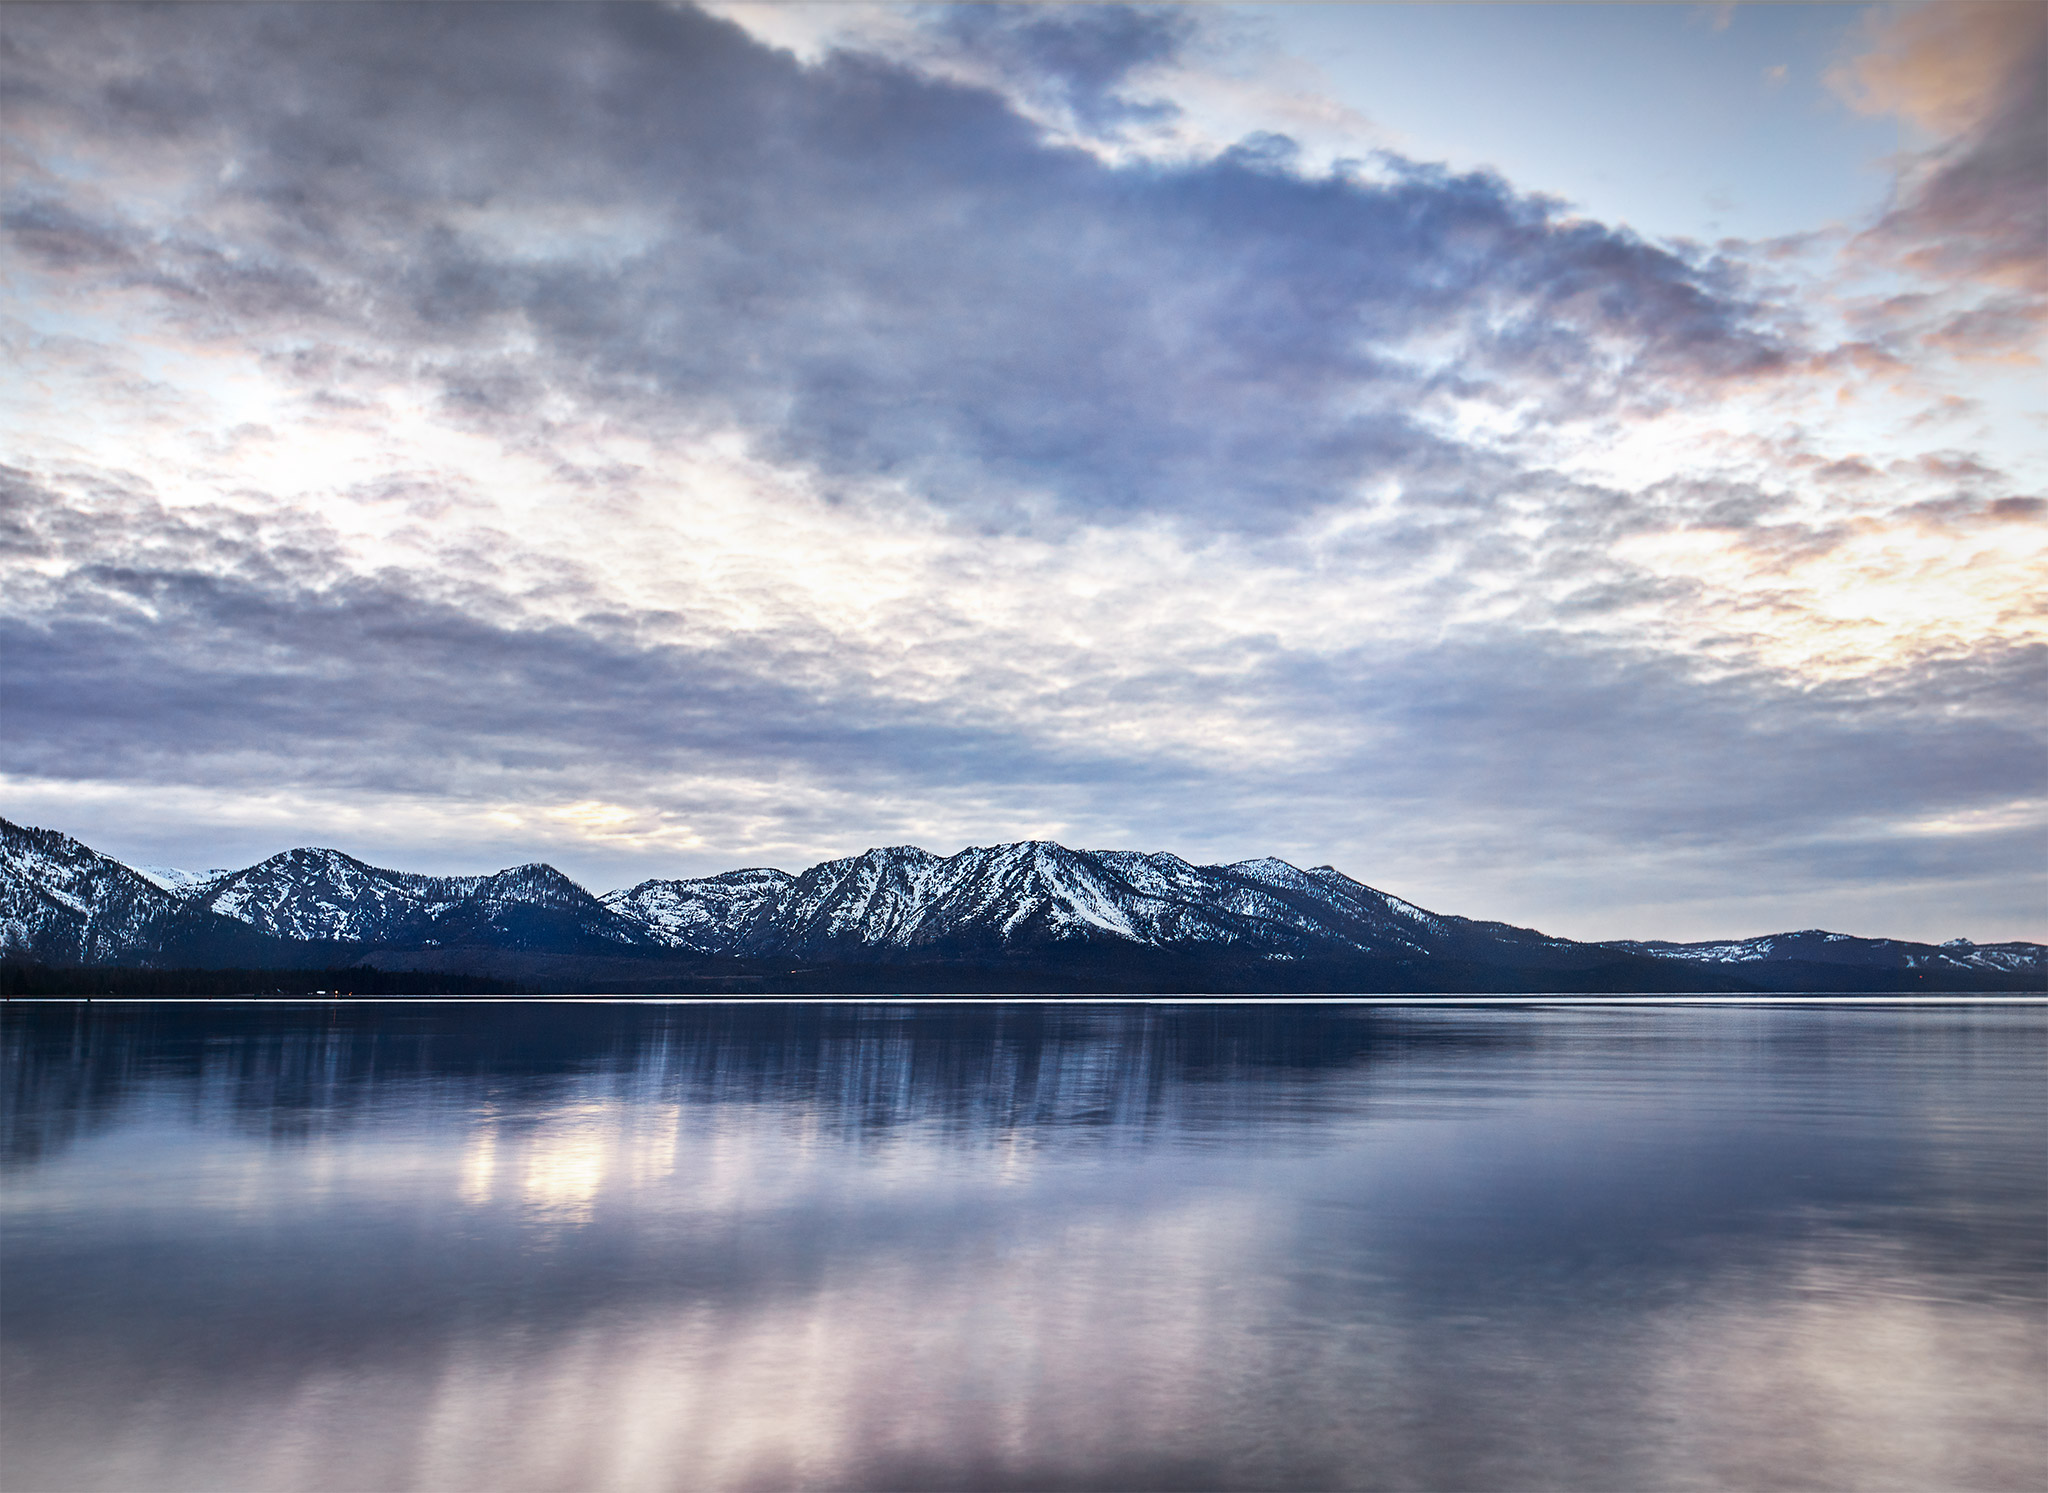 _15A1033-tahoe-lake-mountain-2.jpg